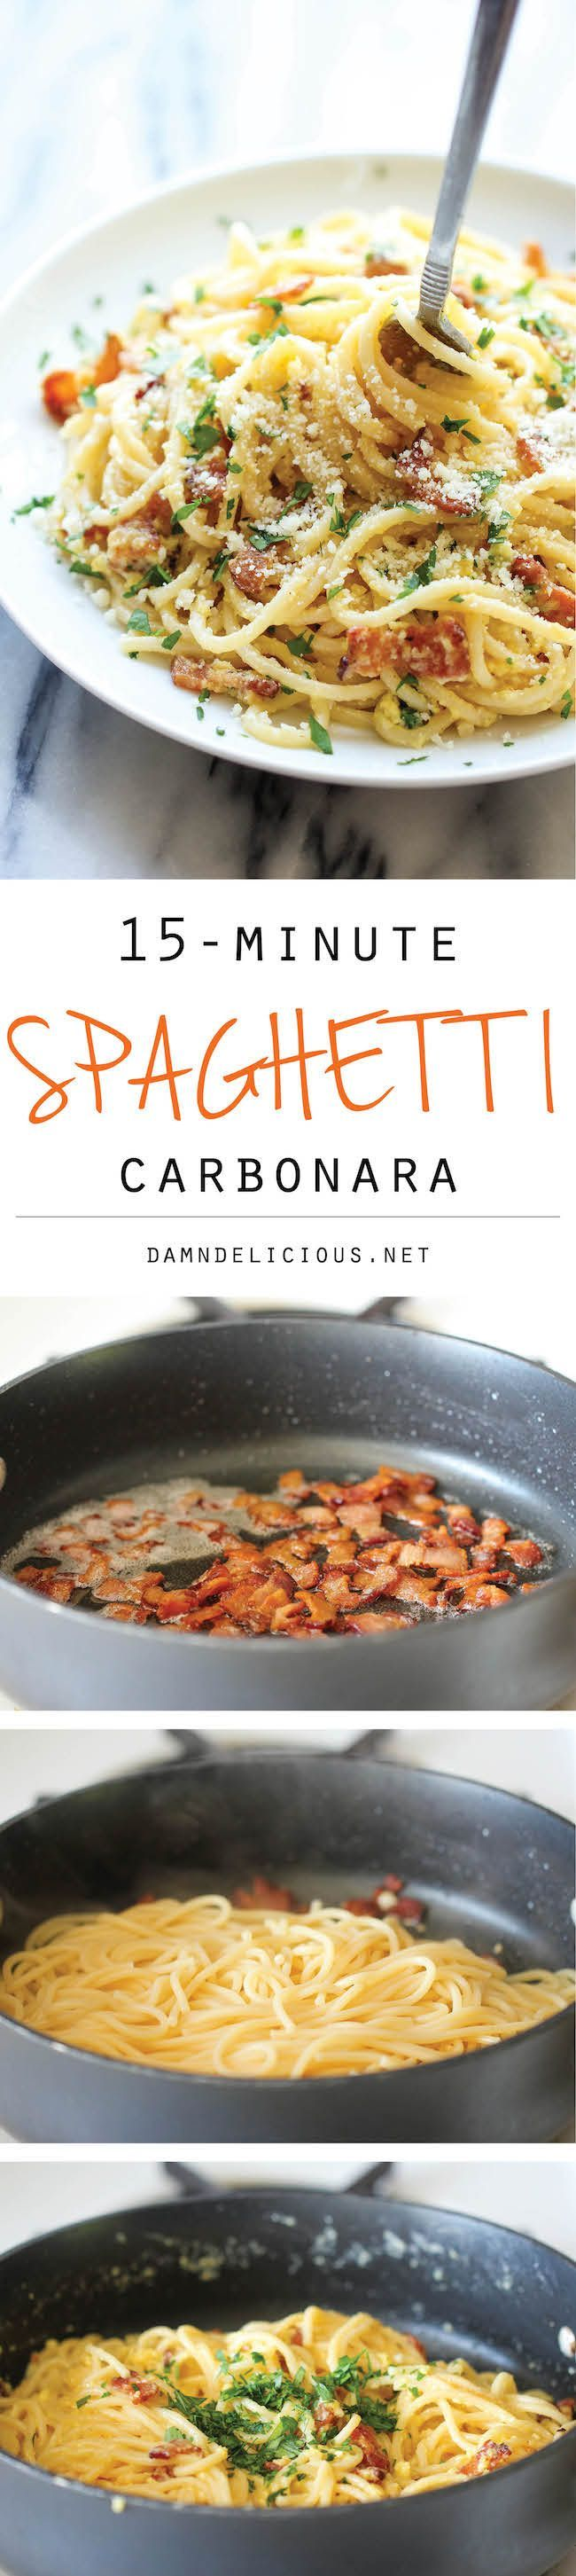 Spaghetti Carbonara - The easiest pasta dish you will ever make with just 5 ingredients in 15 minutes, loaded with Parmesan and bacon!: